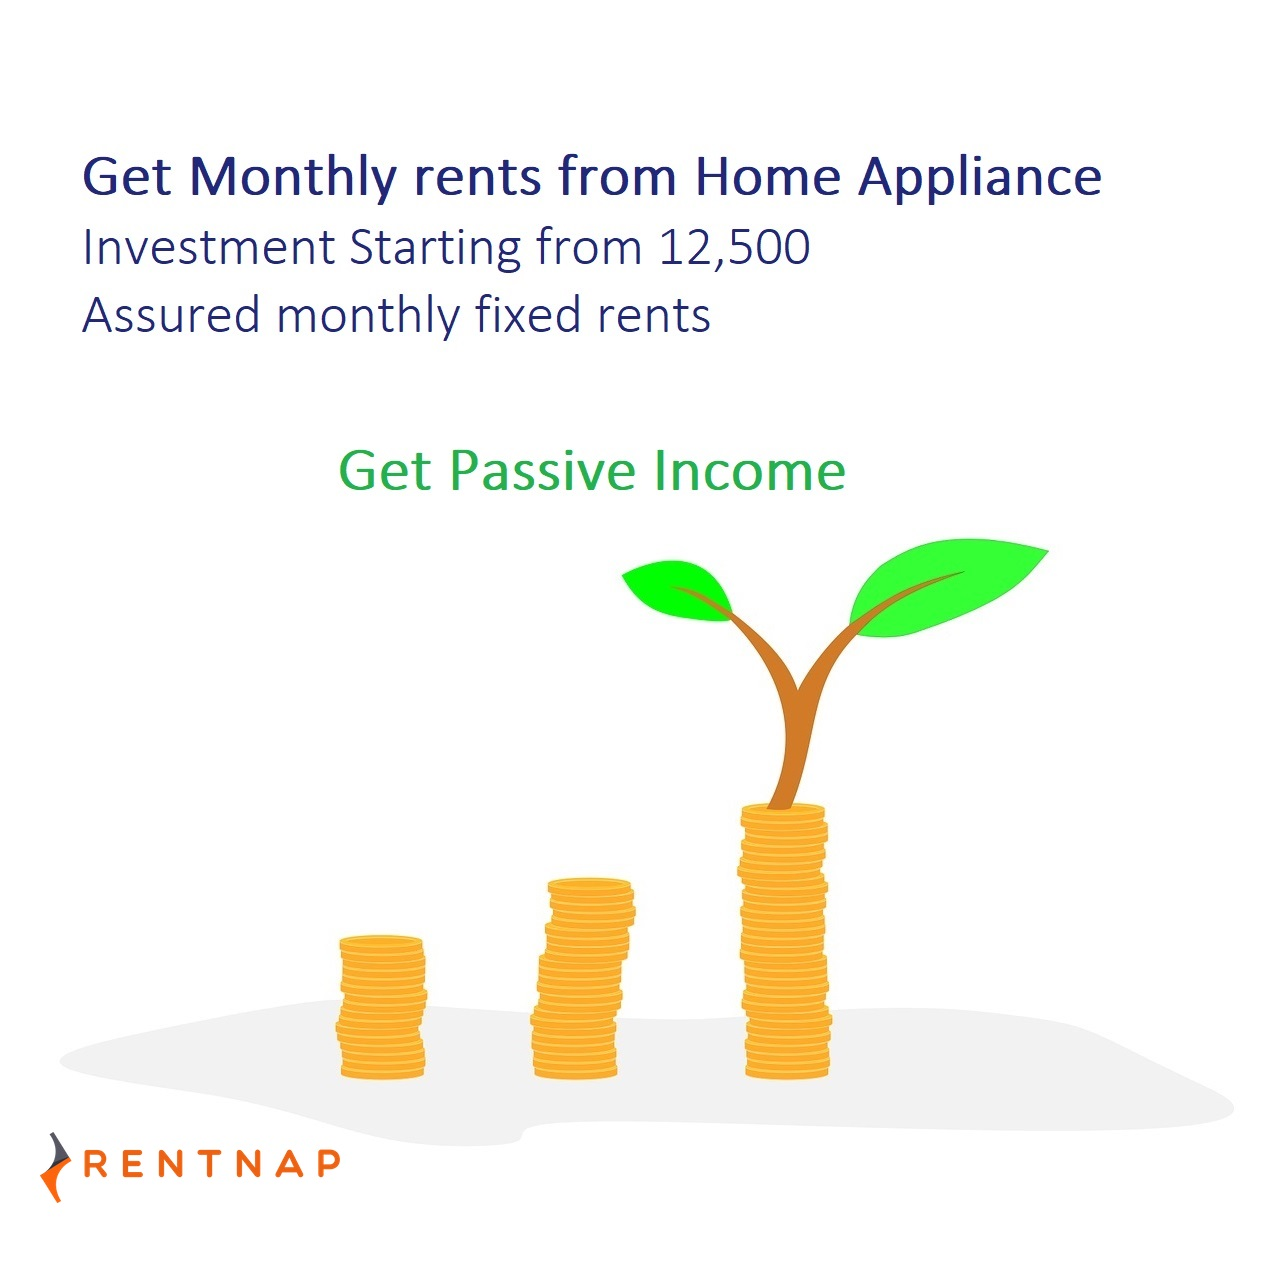 Get Monthly Rents from Home Appliances